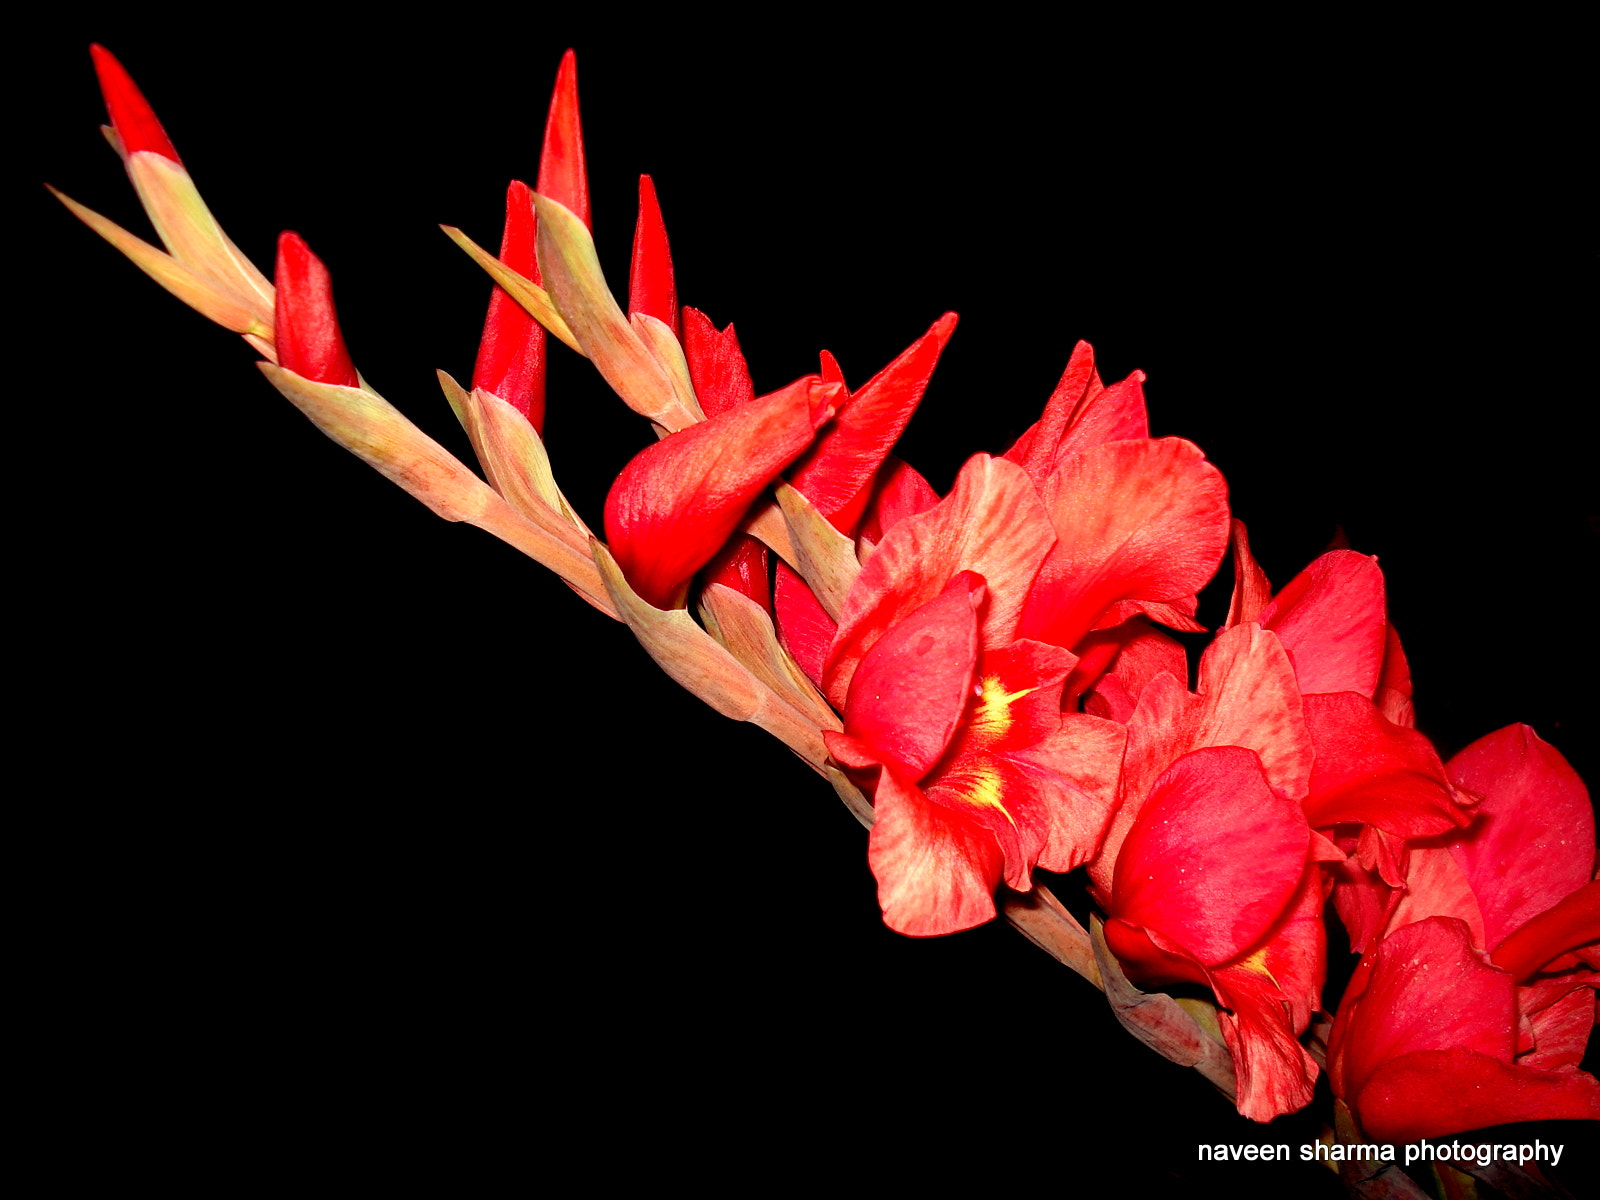 Photograph Bokey of Gladiolus by naveen sharma on 500px